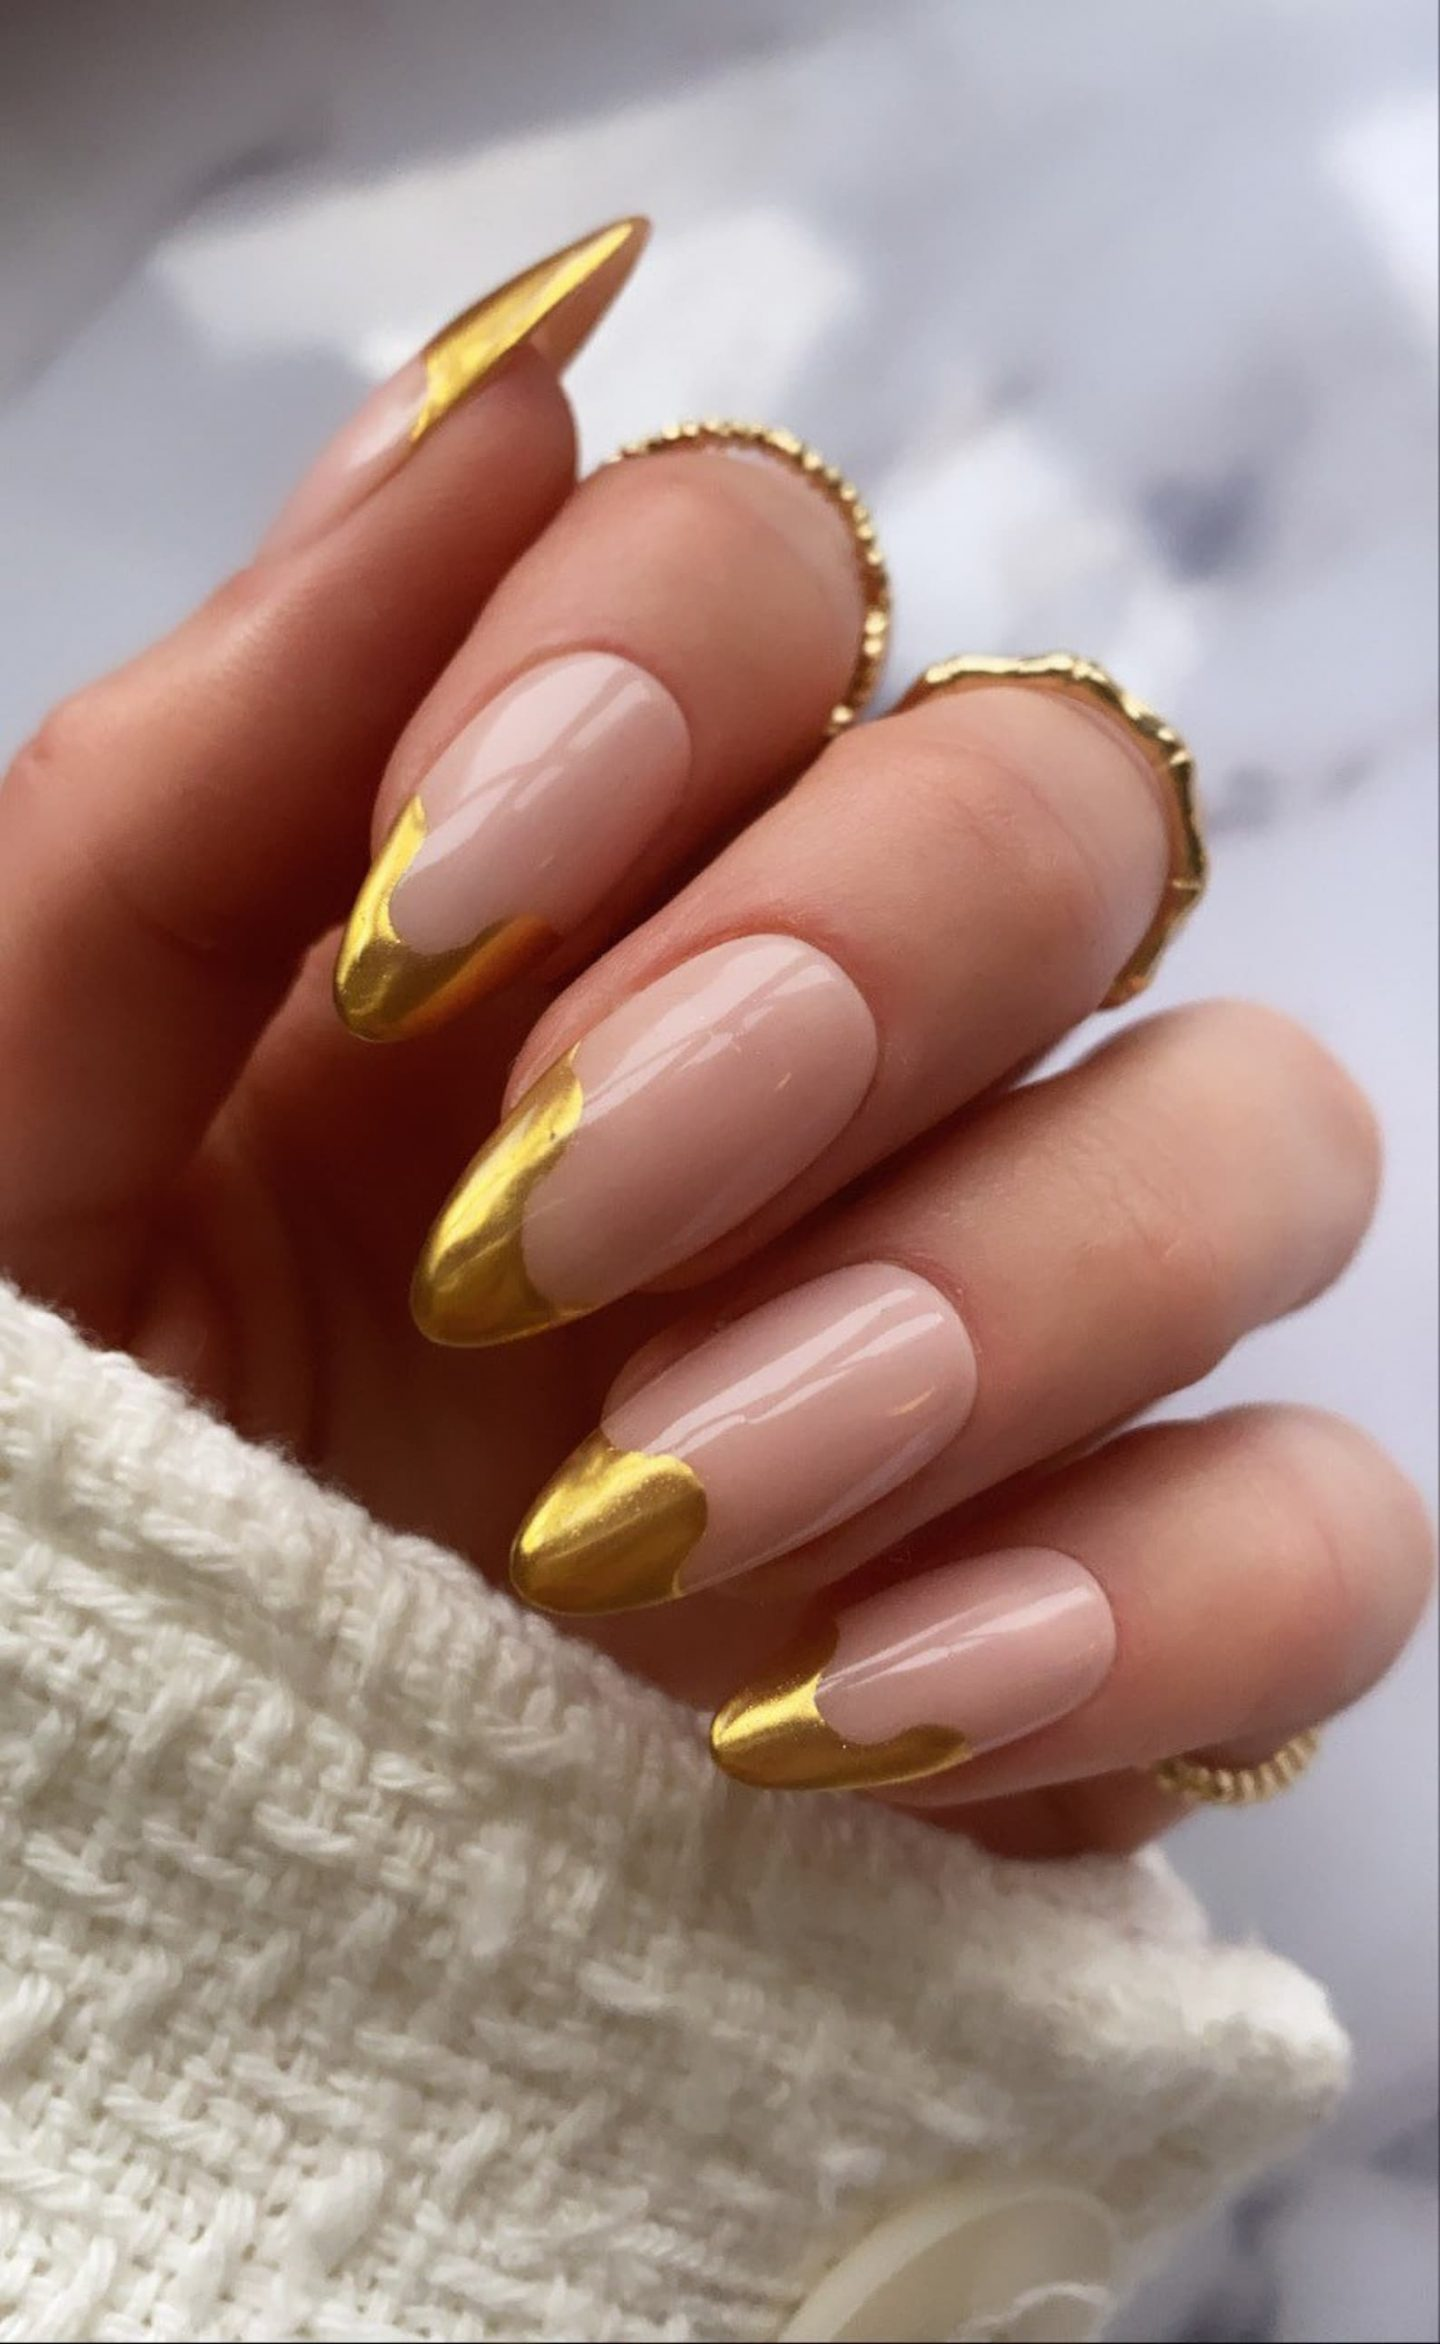 Gold French tip nails with swirl